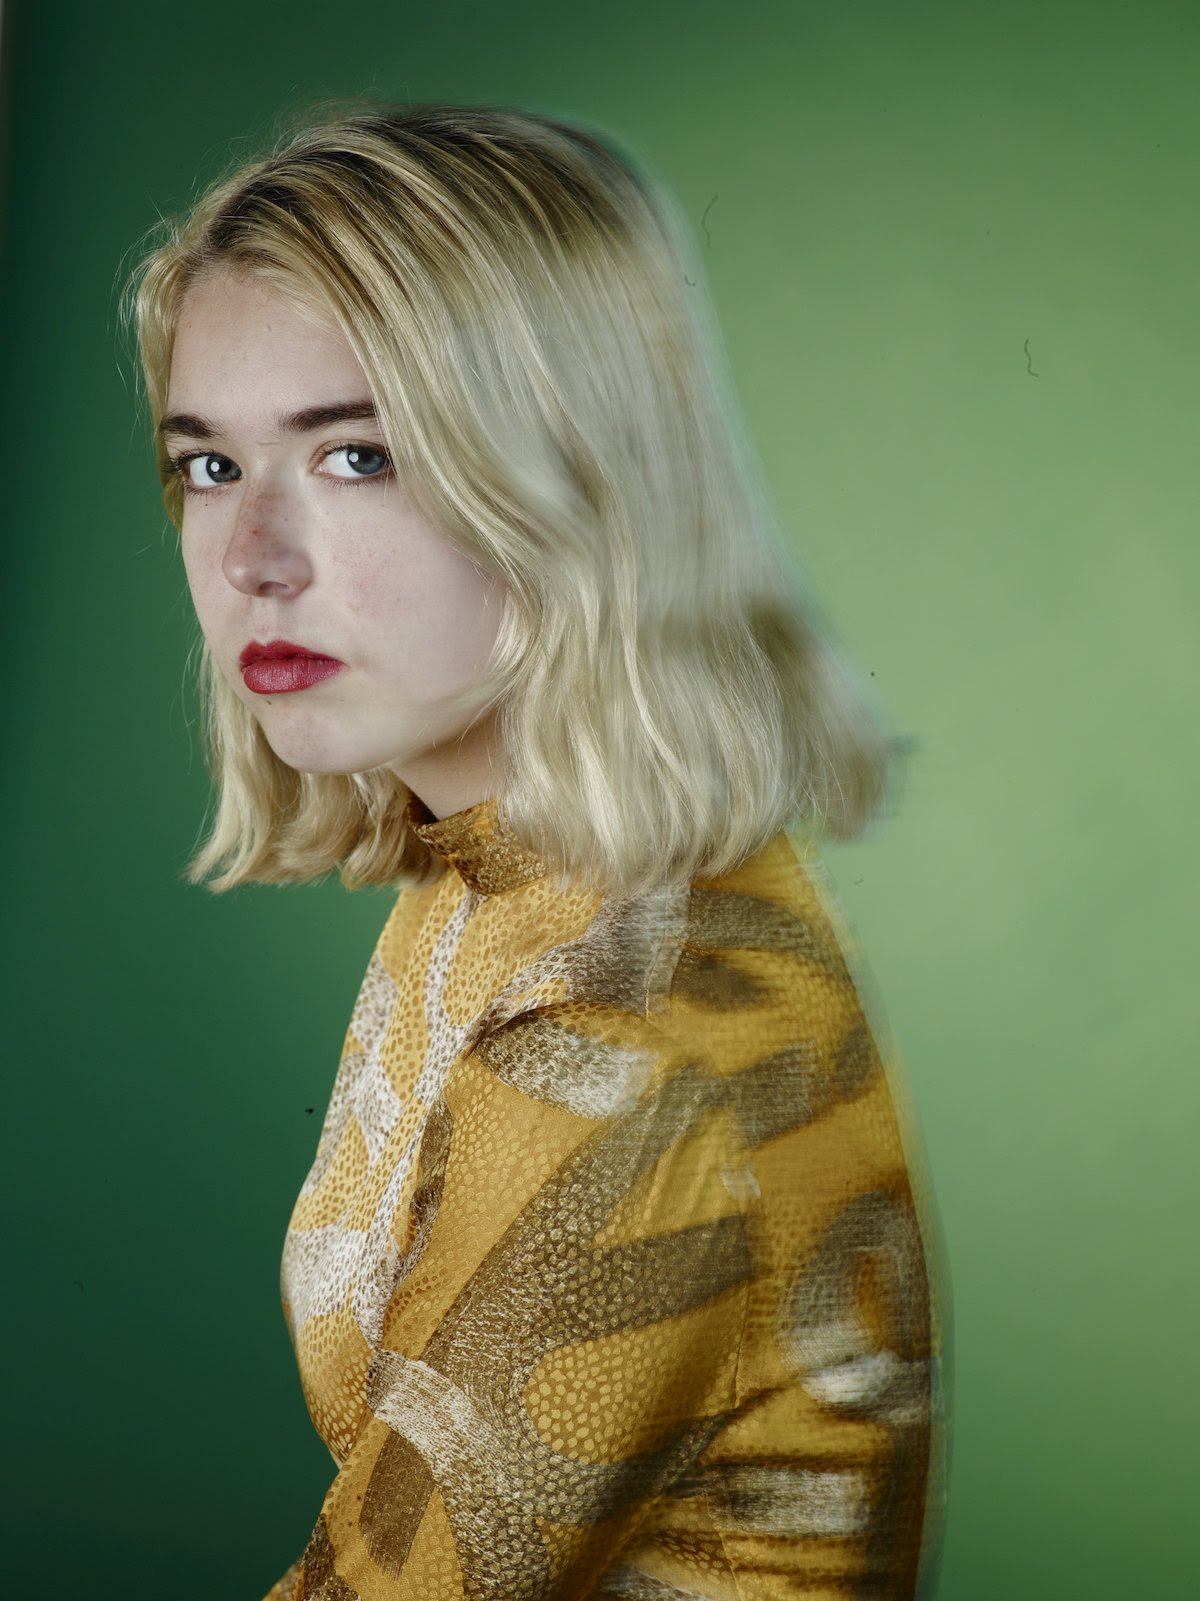 ".@Snailmailband shares new song ""Let's Find An Out."" https://t.co/tk9O8ER6K7 https://t.co/762GYARqqq"